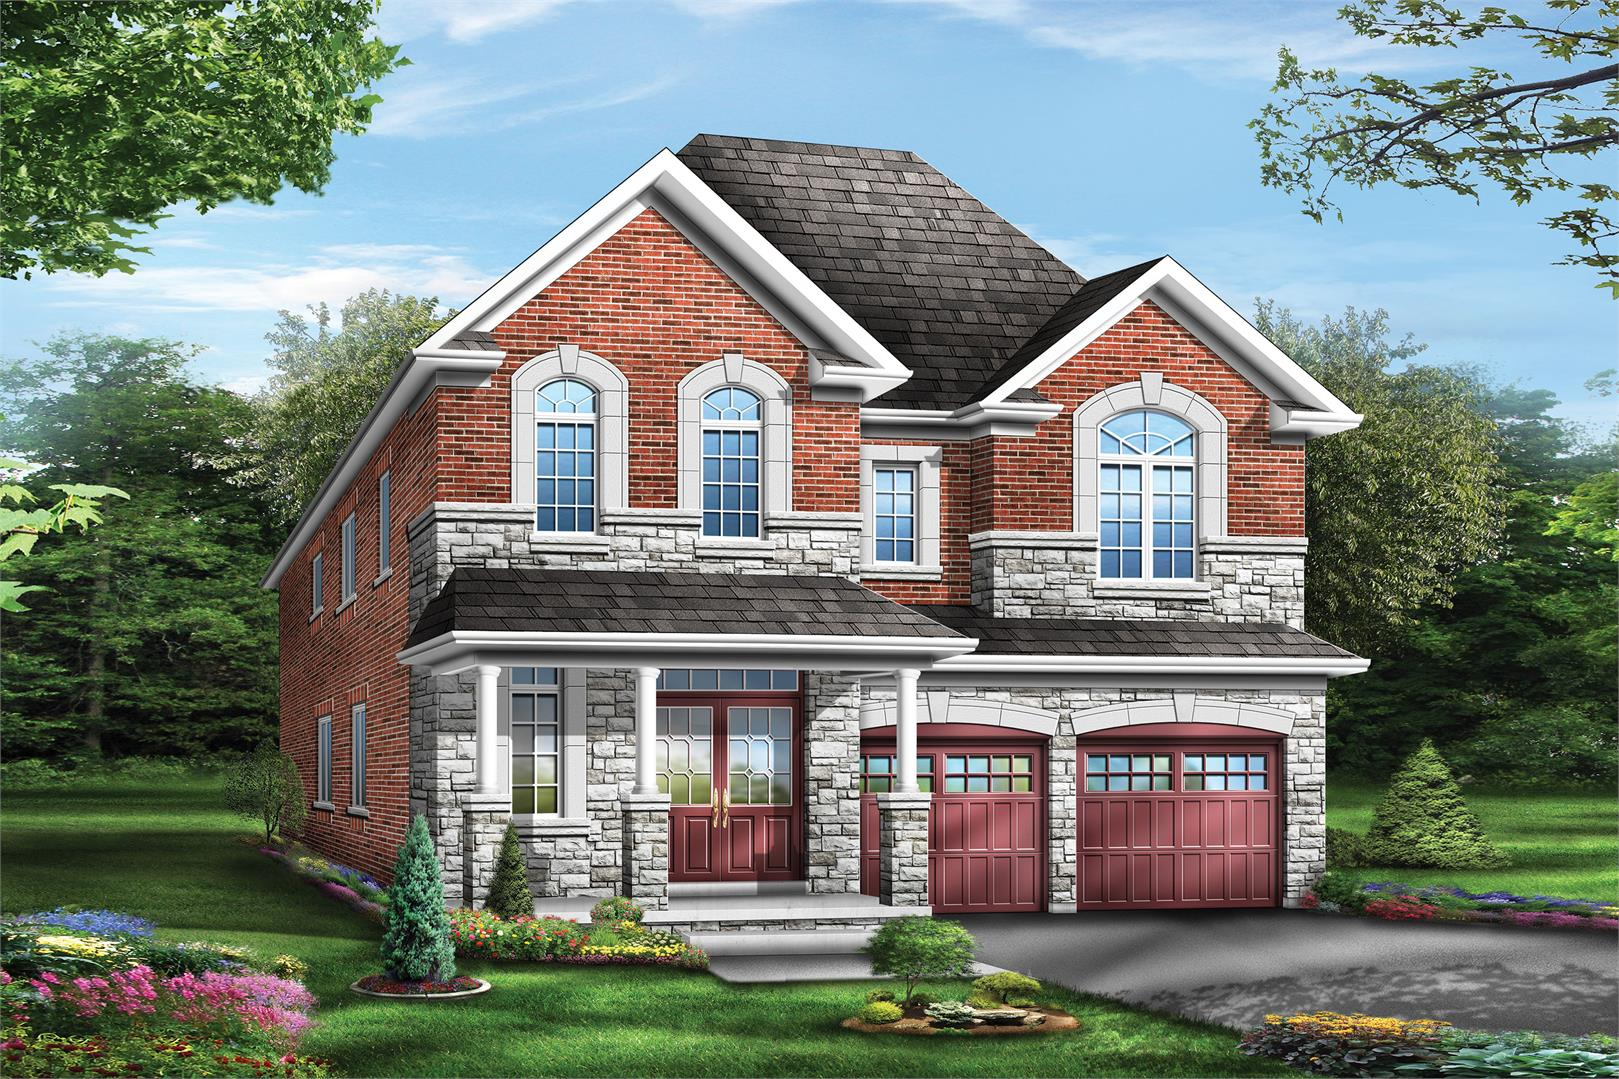 Starlane Homes Saddle Ridge Foster 8, Elev. 2